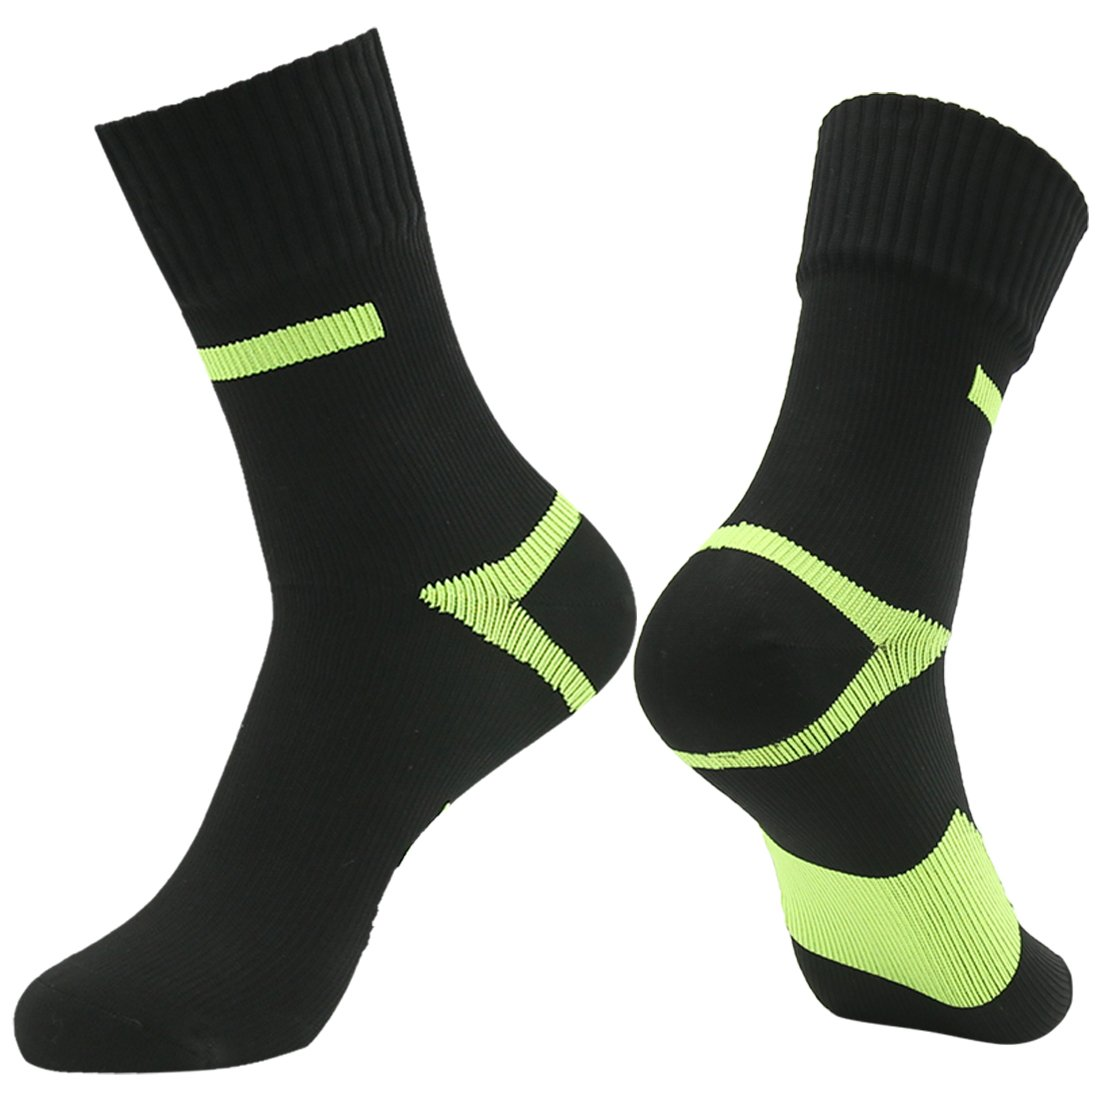 RANDY SUN Breathable Waterproof Socks, Men's Funny High Performance Cushioned Color Socks Black Green by RANDY SUN